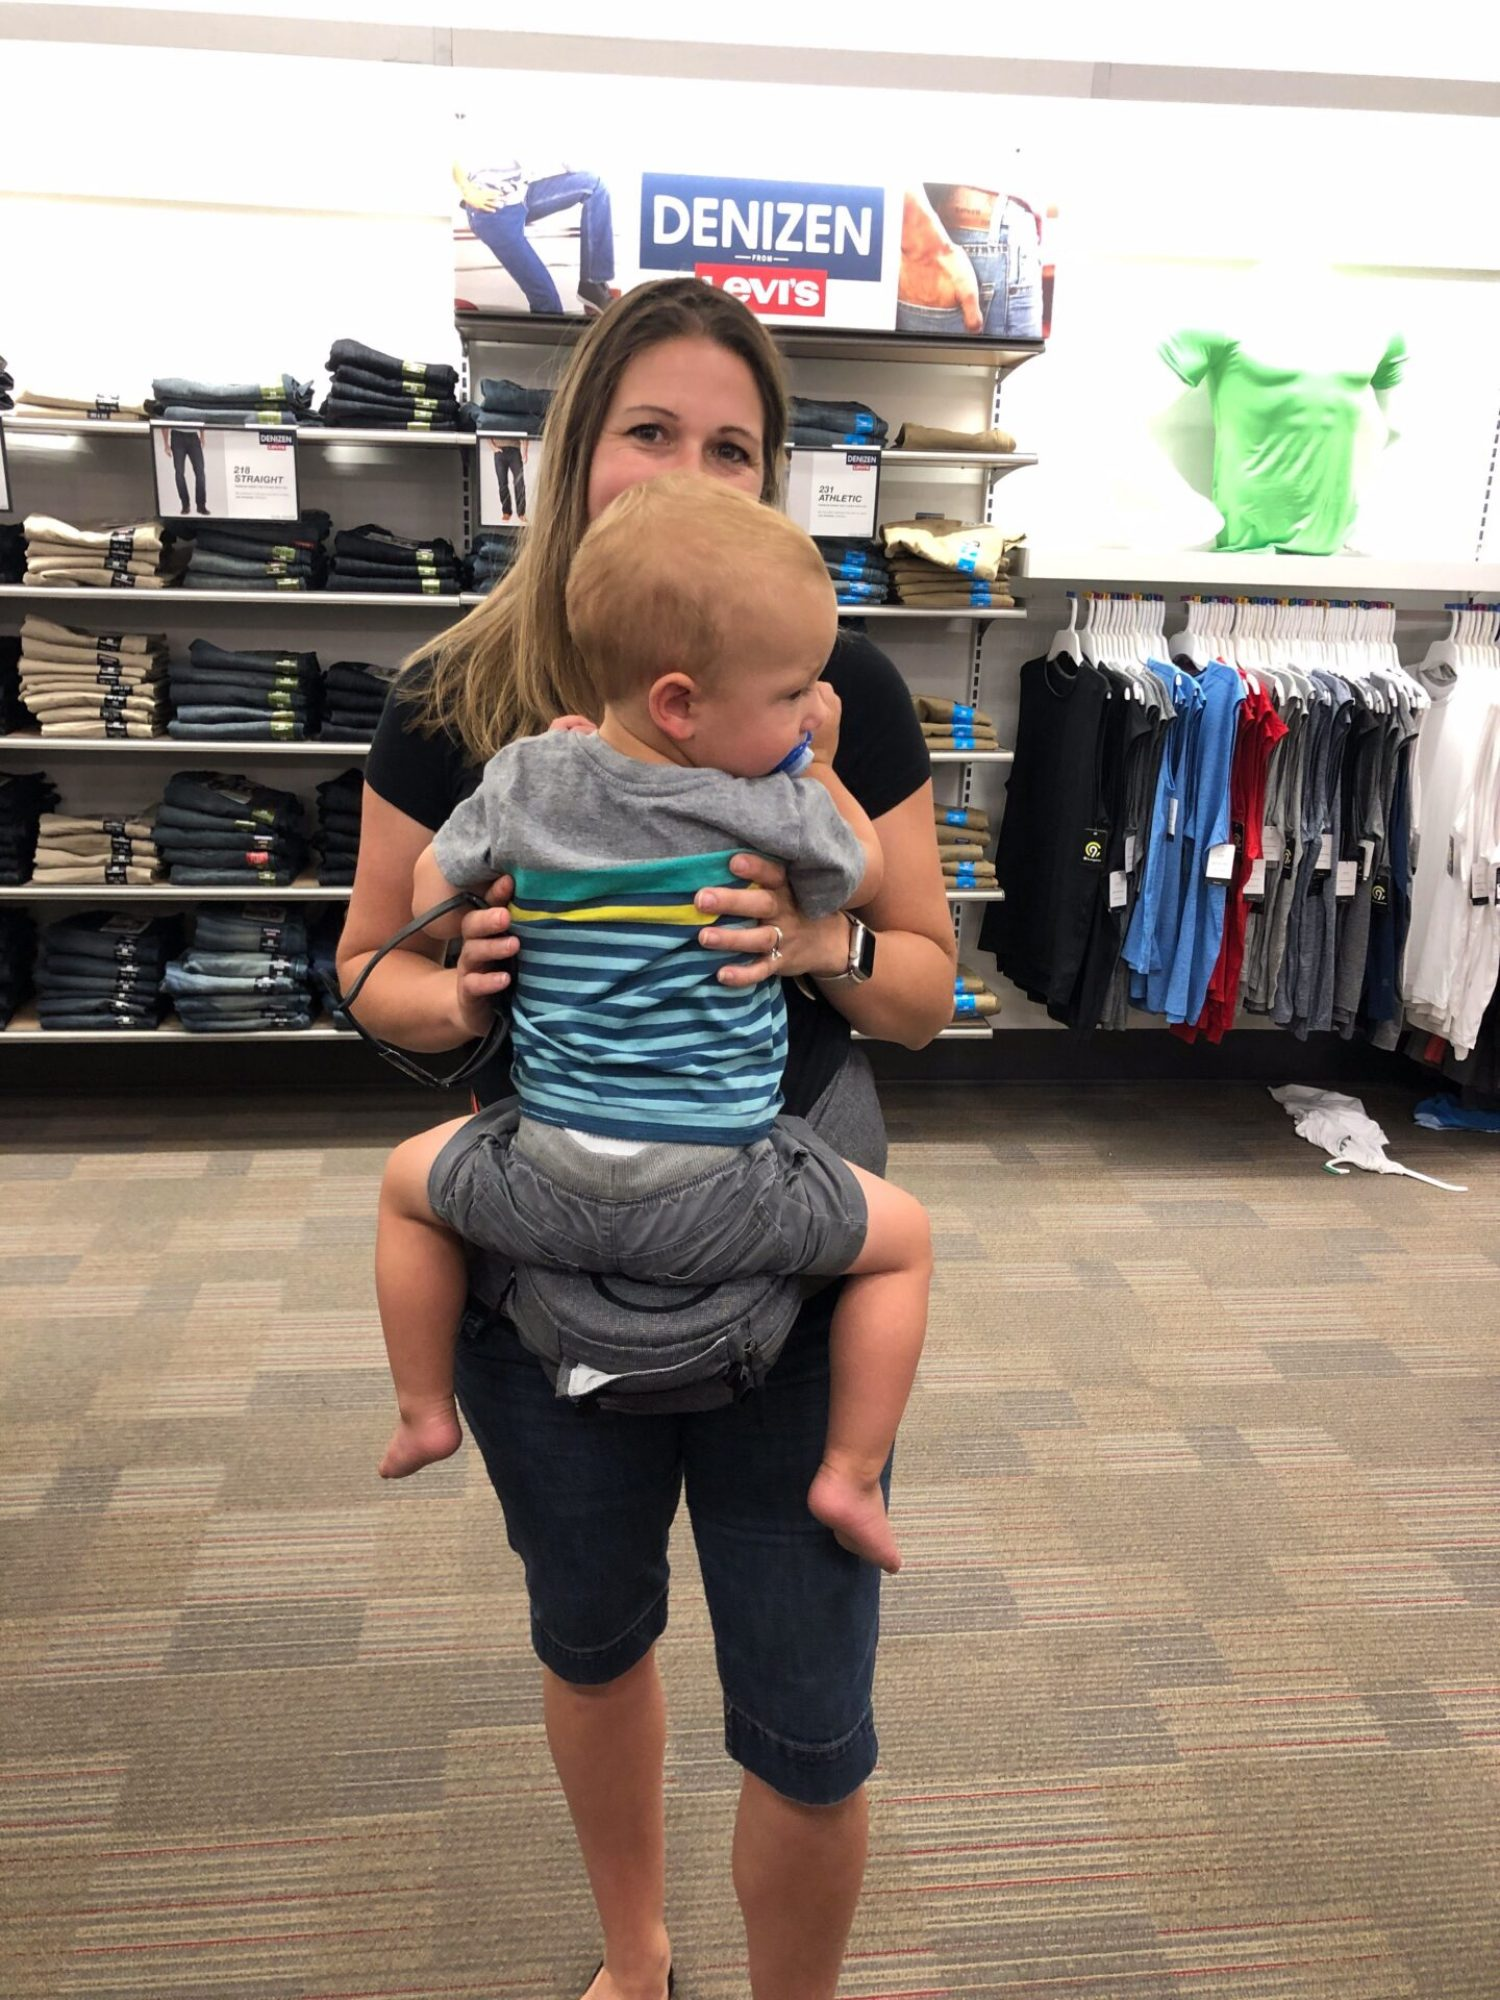 Do you struggle to find things for your toddler to do while in public? We have 10 ways to entertain your toddler in public to keep them from running away!